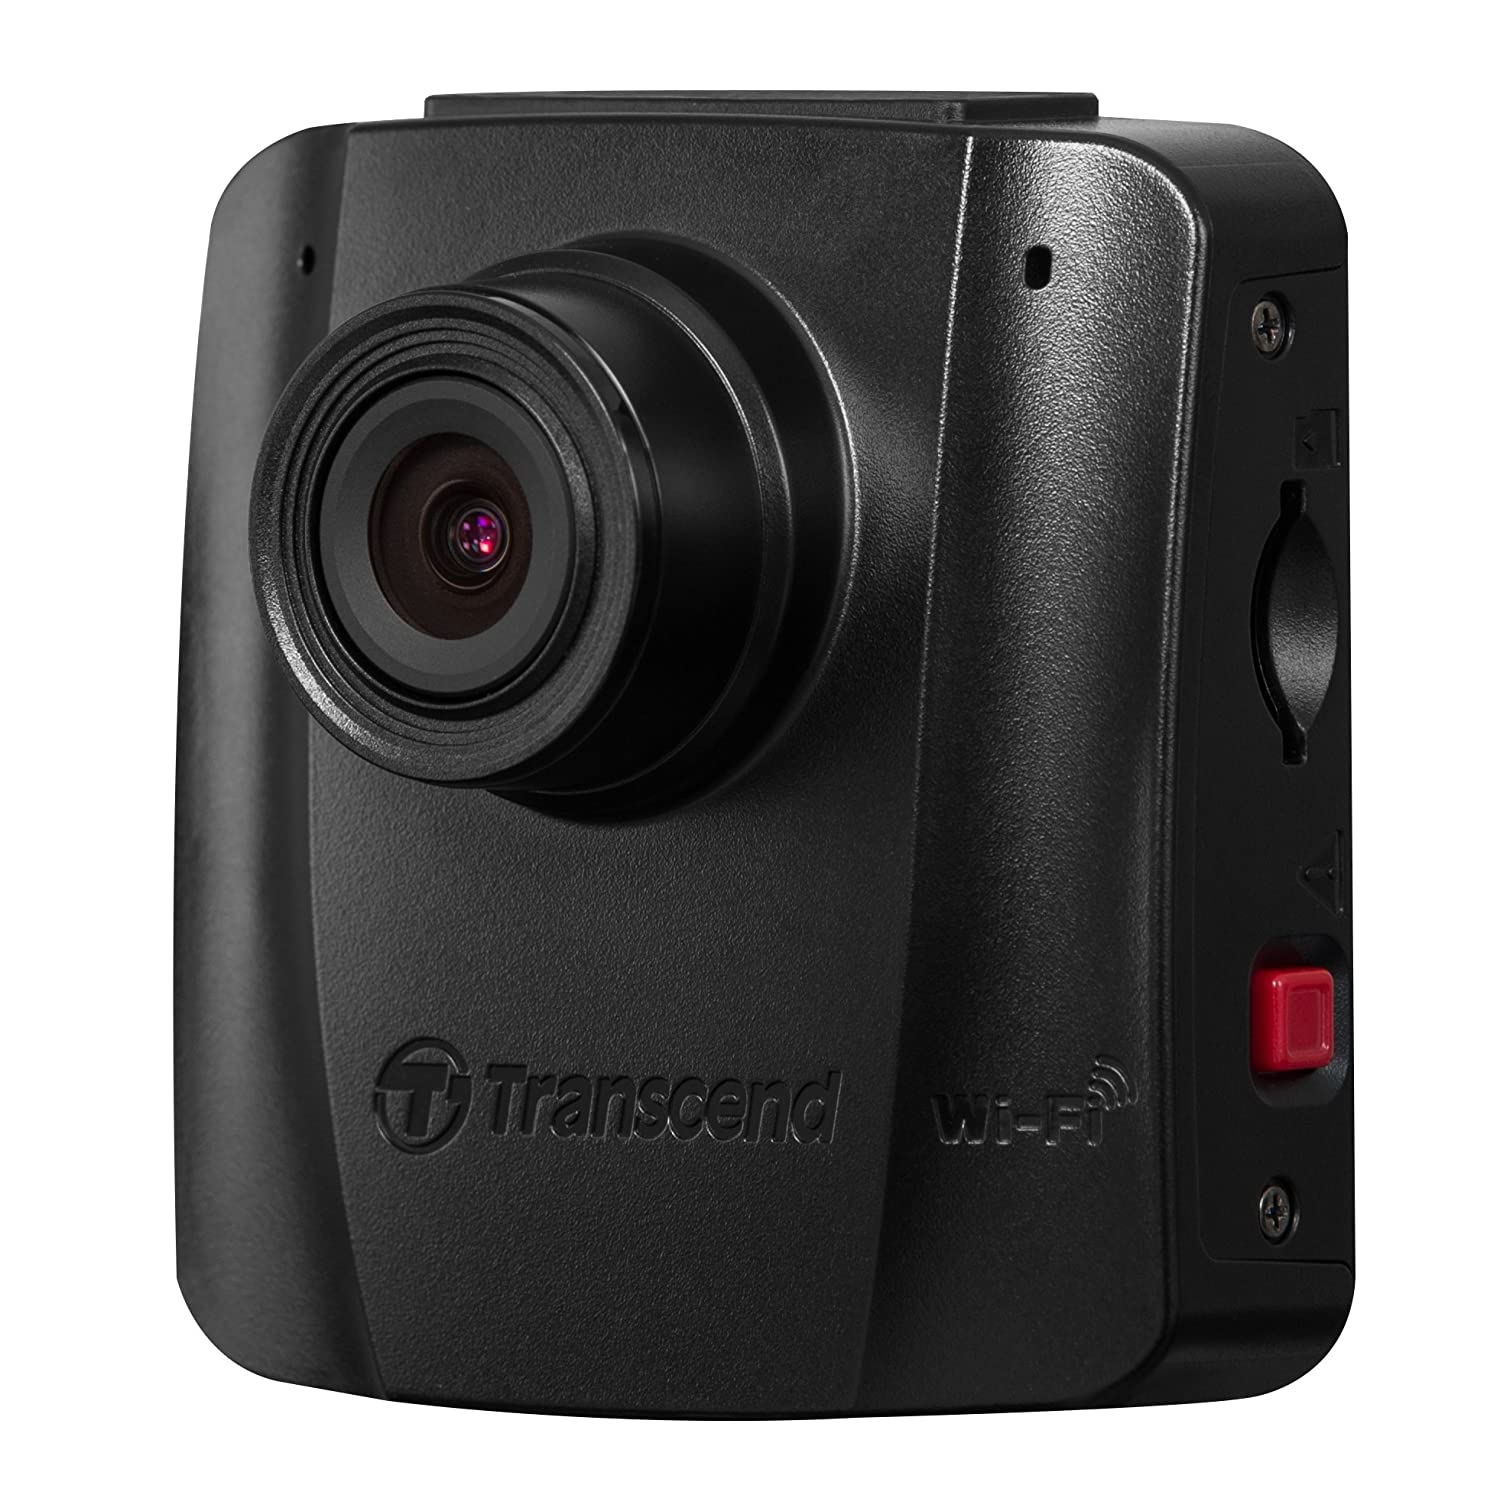 Transcend 16 GB DrivePro 200 Car Video Recorder with Built-In Wi-Fi , TS16GDP200